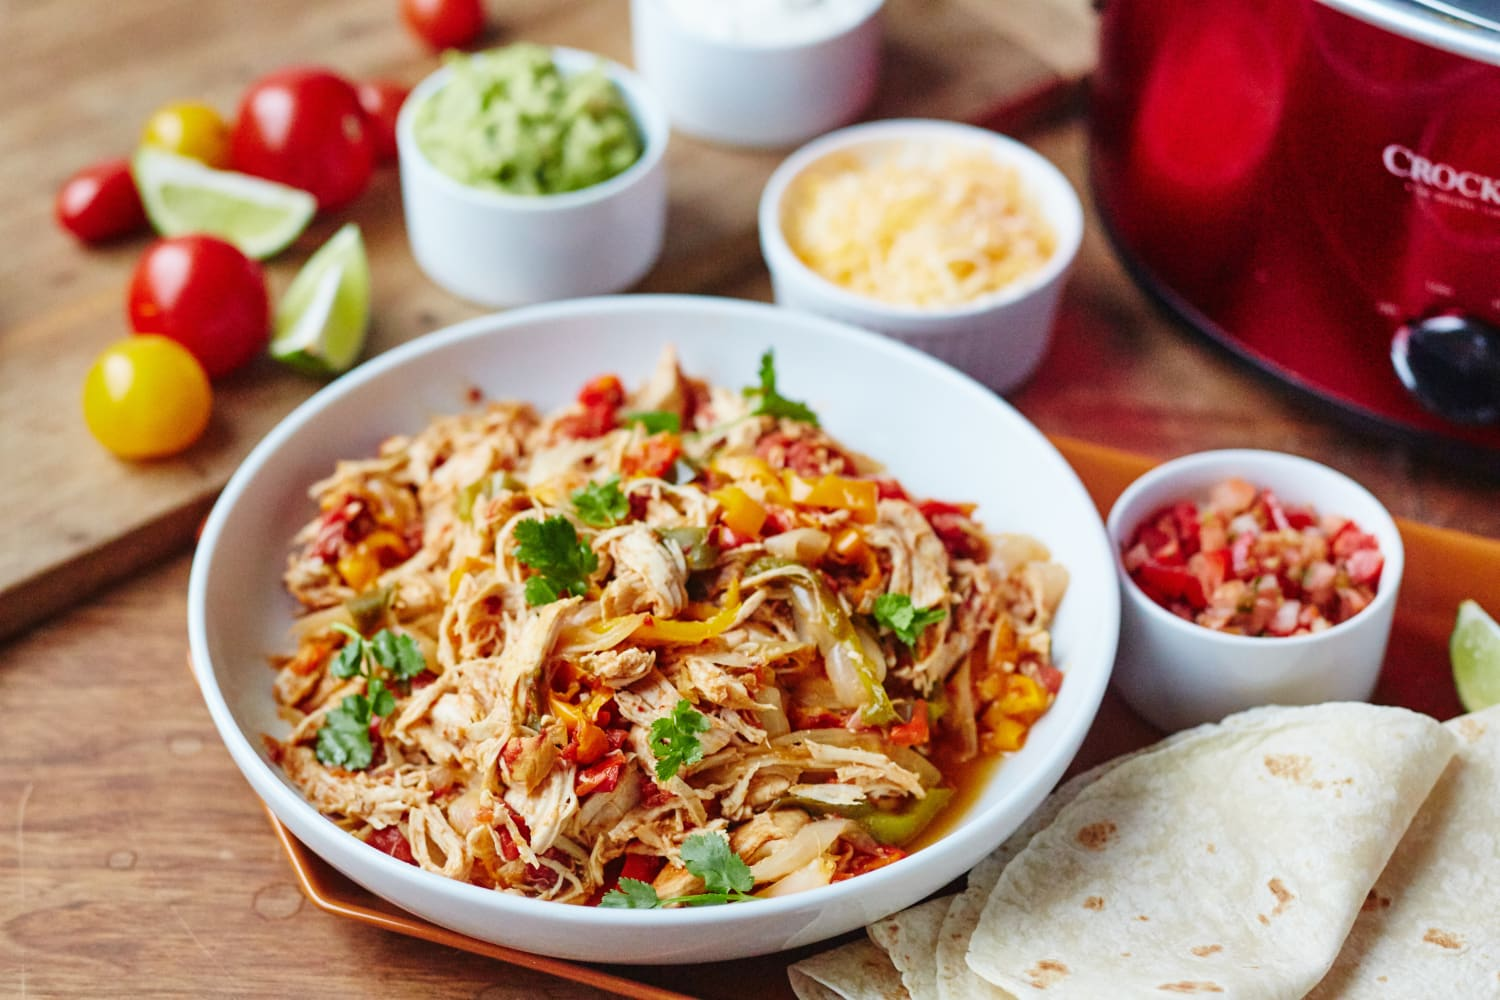 10 Easy Slow Cooker Dinners to Make on Busy Weeknights